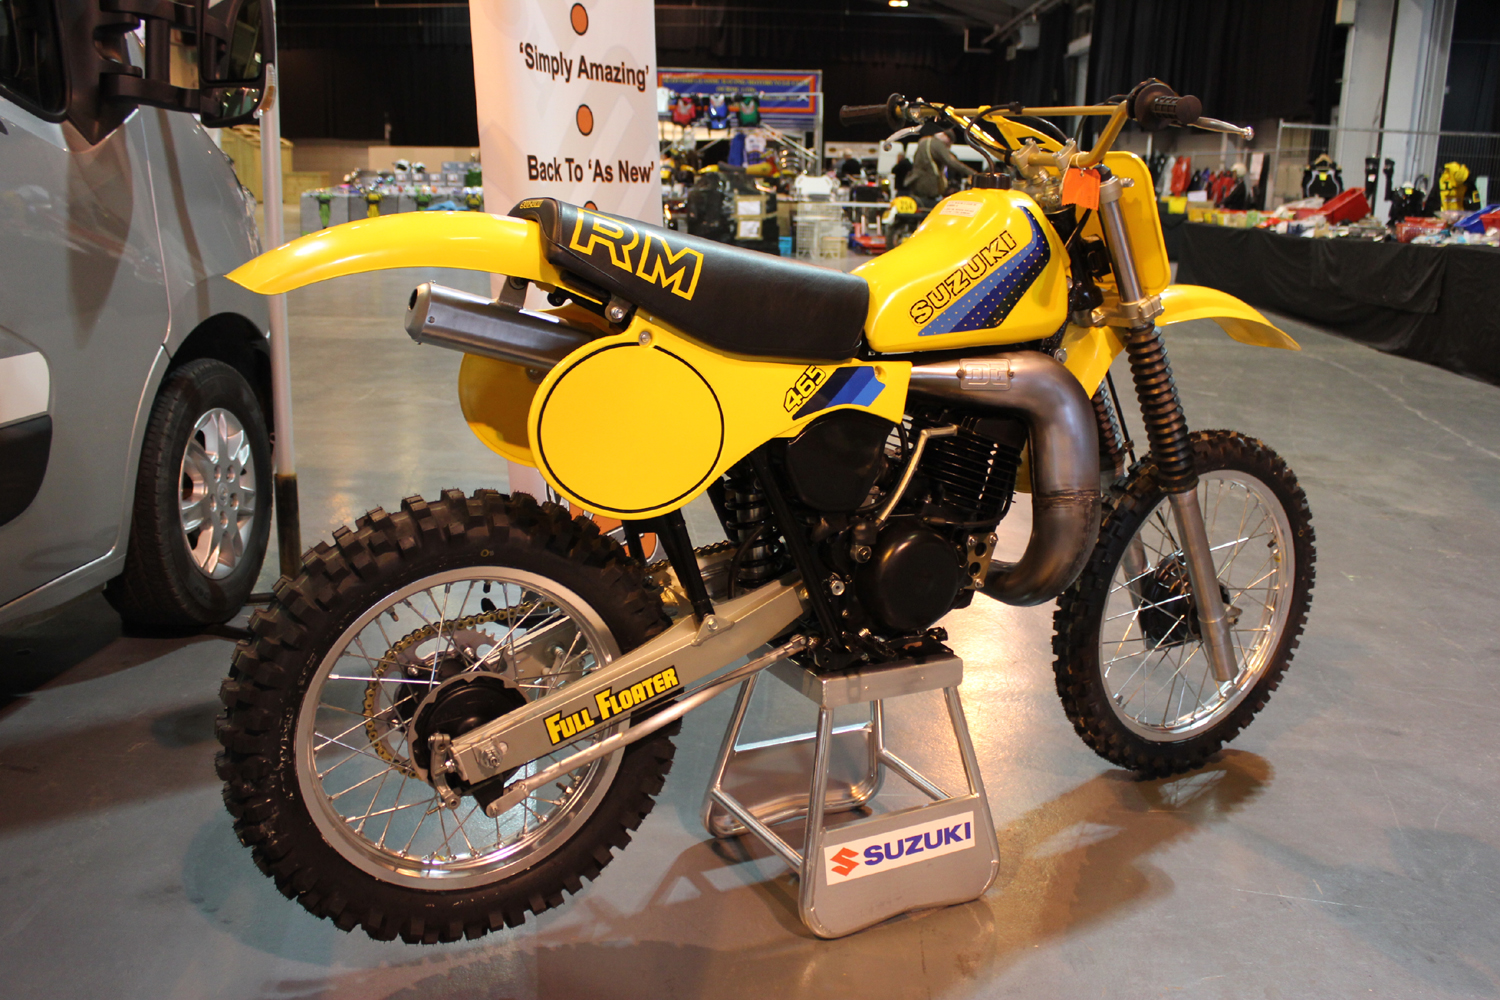 classicdirtbikerider.com-photo by Mr J-2015 Telford classic dirt bike show-SUZUKI RM465